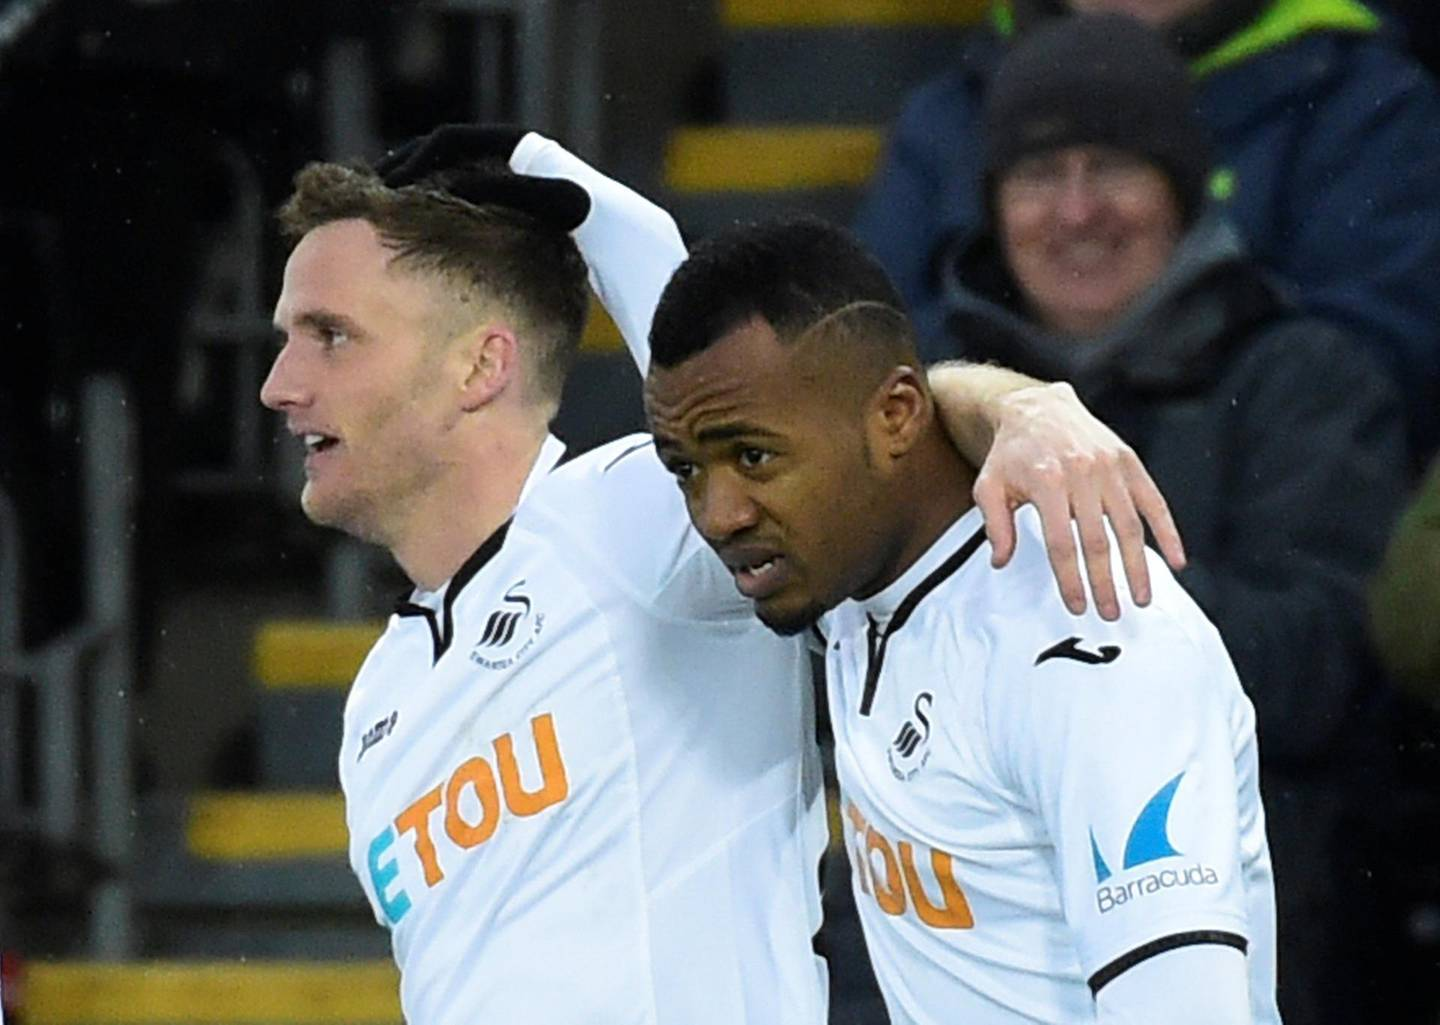 """Soccer Football - Premier League - Swansea City vs West Ham United - Liberty Stadium, Swansea, Britain - March 3, 2018   Swansea City's Andy King celebrates scoring their third goal with Jordon Ayew      REUTERS/Rebecca Naden    EDITORIAL USE ONLY. No use with unauthorized audio, video, data, fixture lists, club/league logos or """"live"""" services. Online in-match use limited to 75 images, no video emulation. No use in betting, games or single club/league/player publications.  Please contact your account representative for further details."""